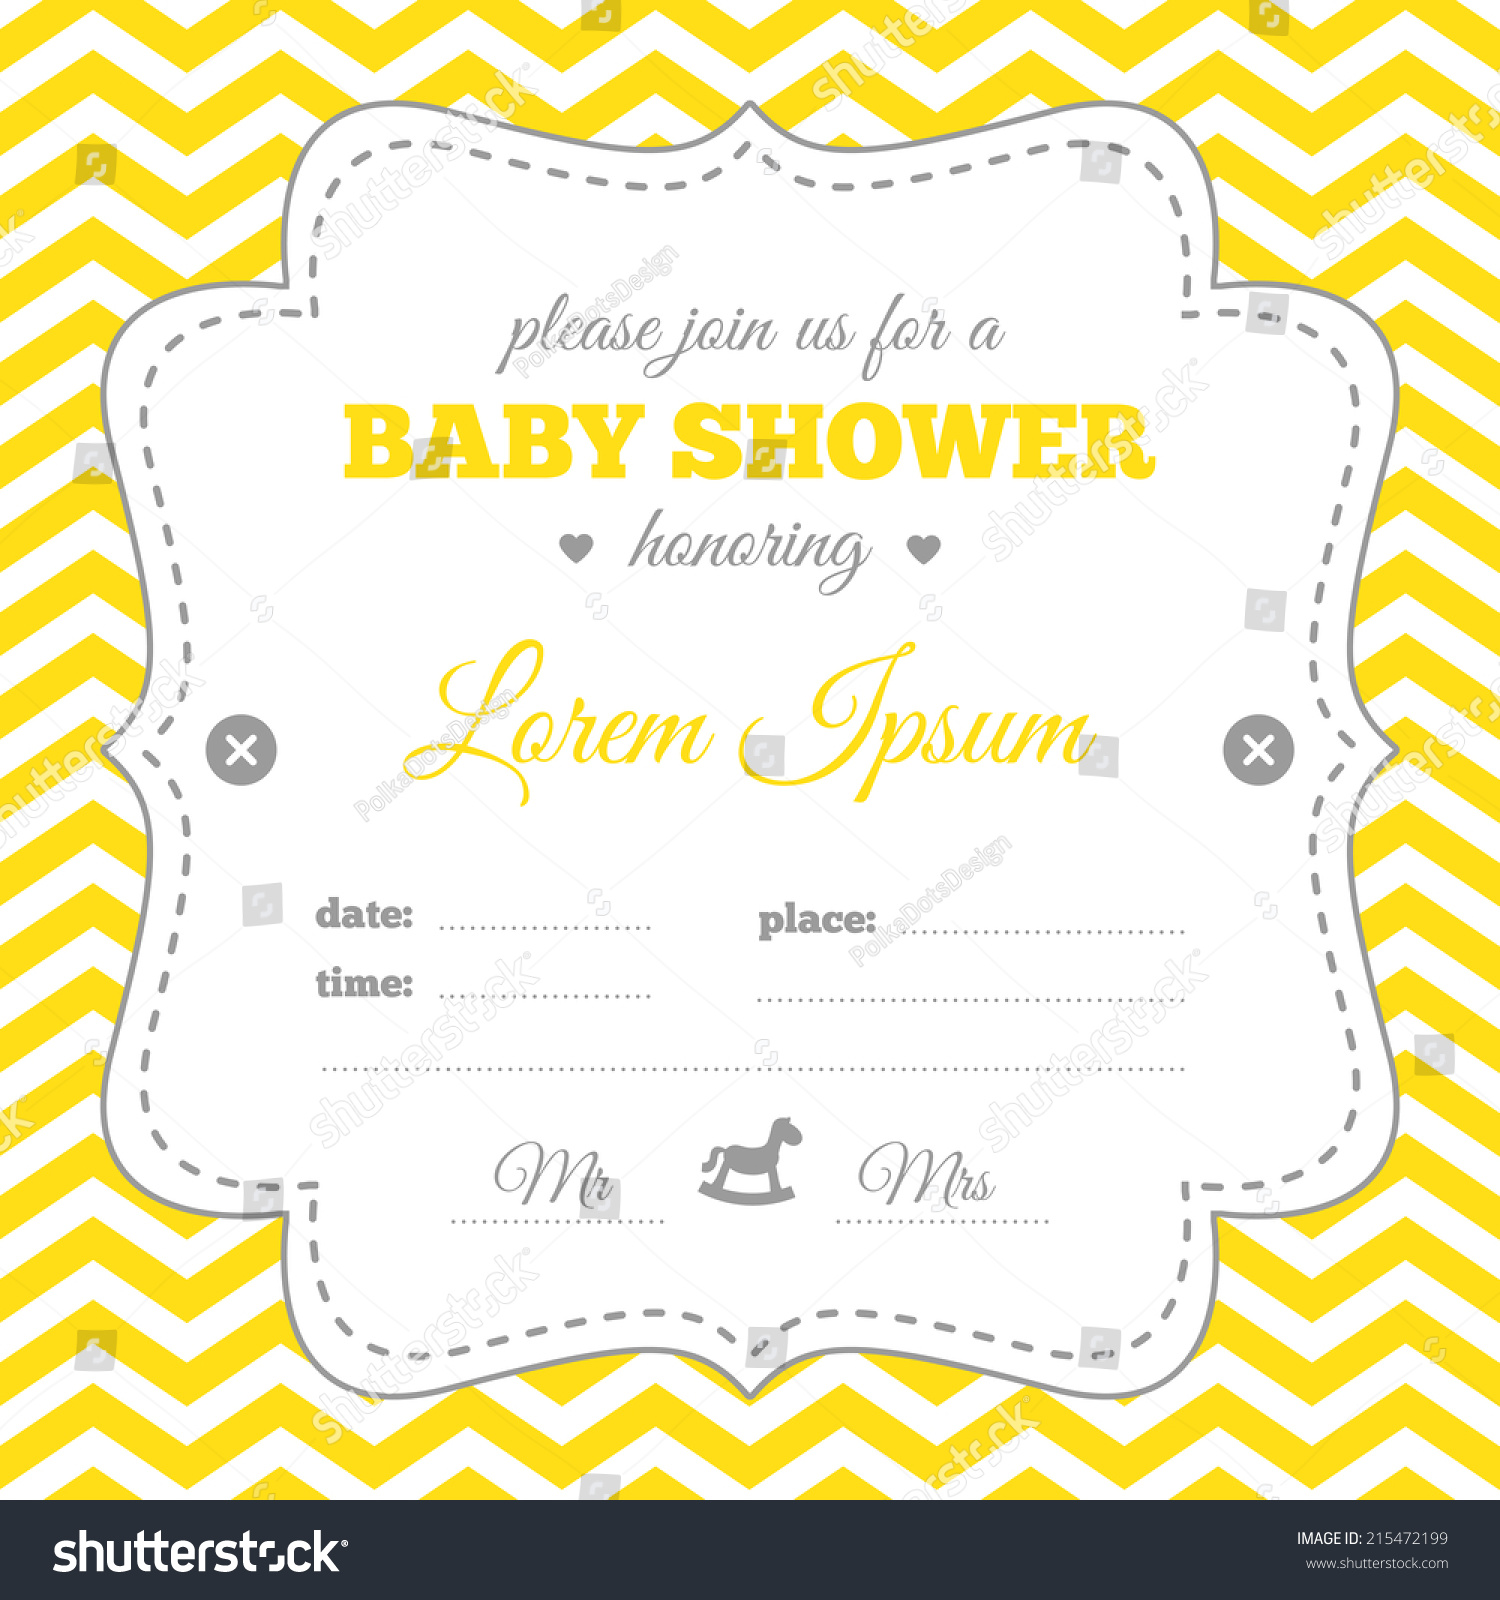 Baby Shower Invitation White Gray Yellow Stock Vector 215472199 ...